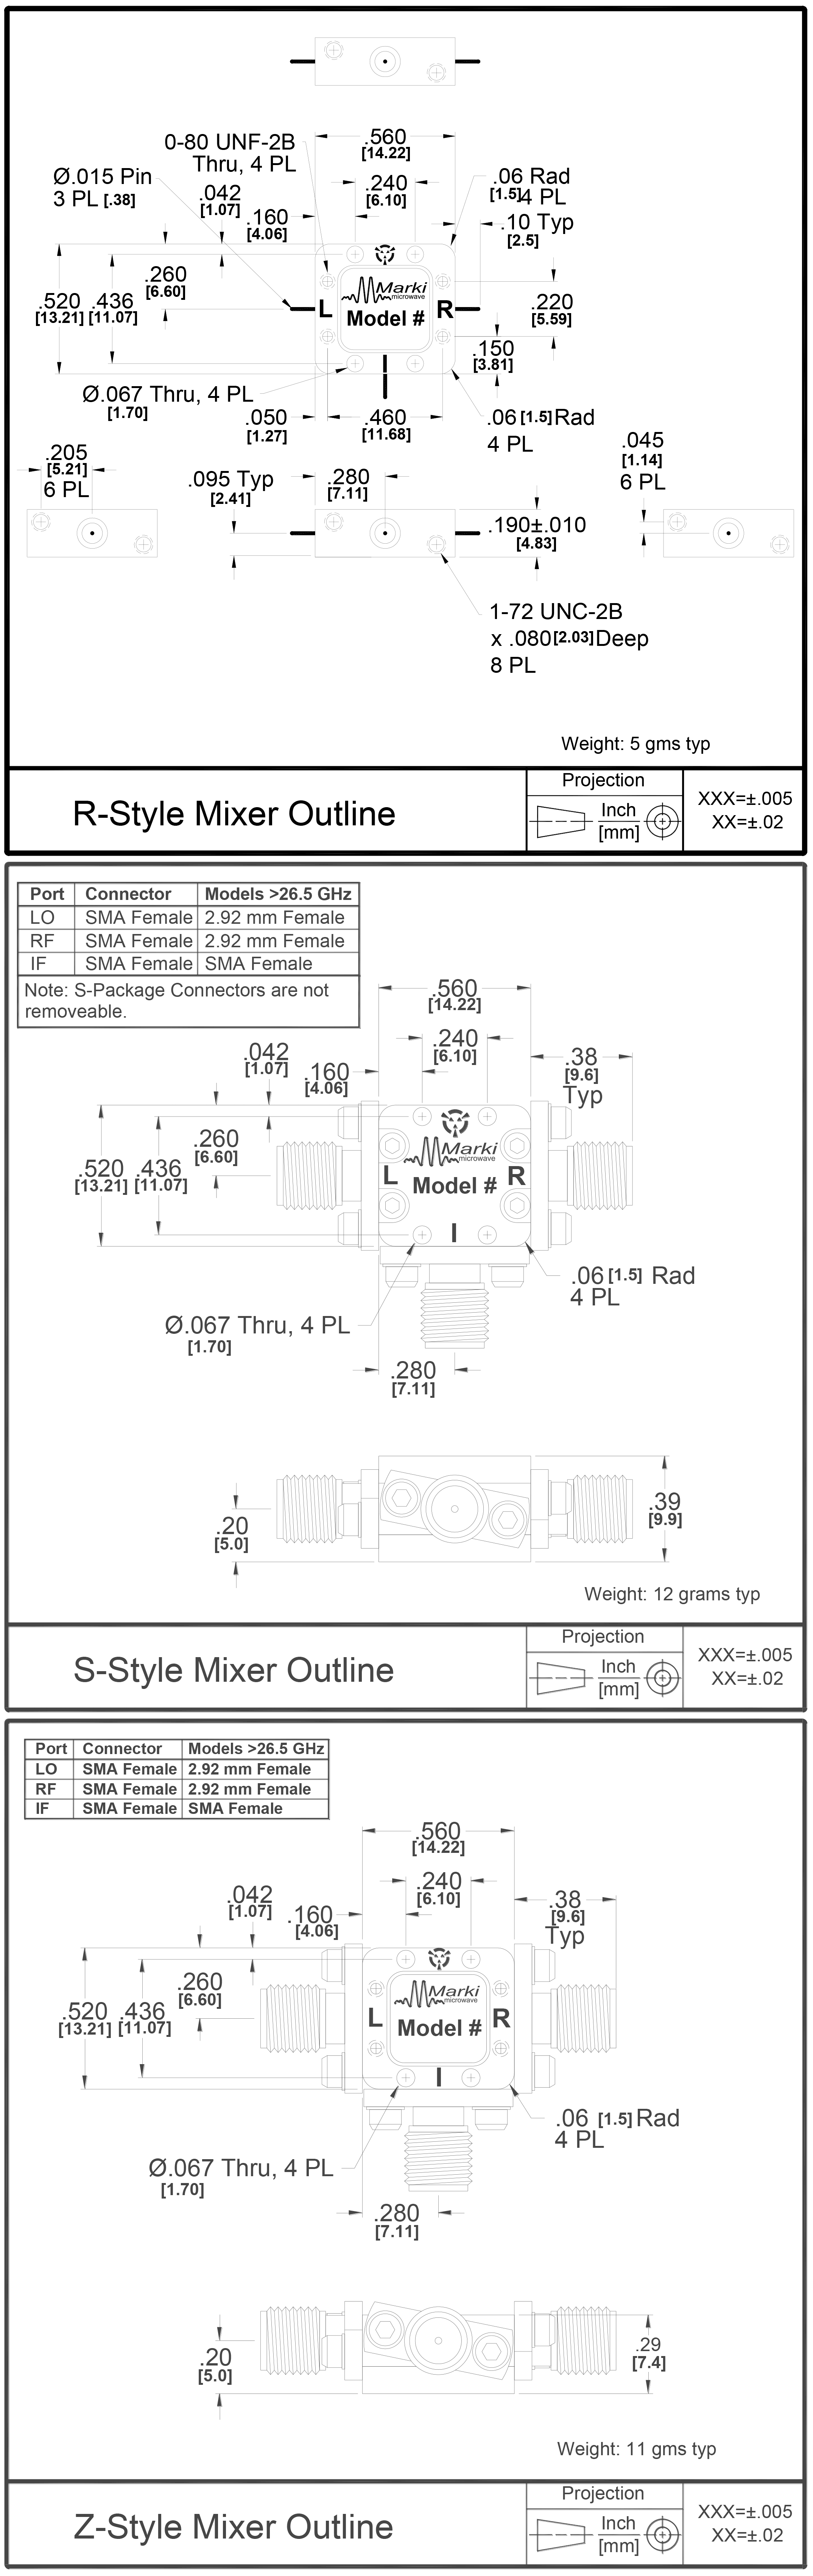 M8-0420 Mixer Package Diagram